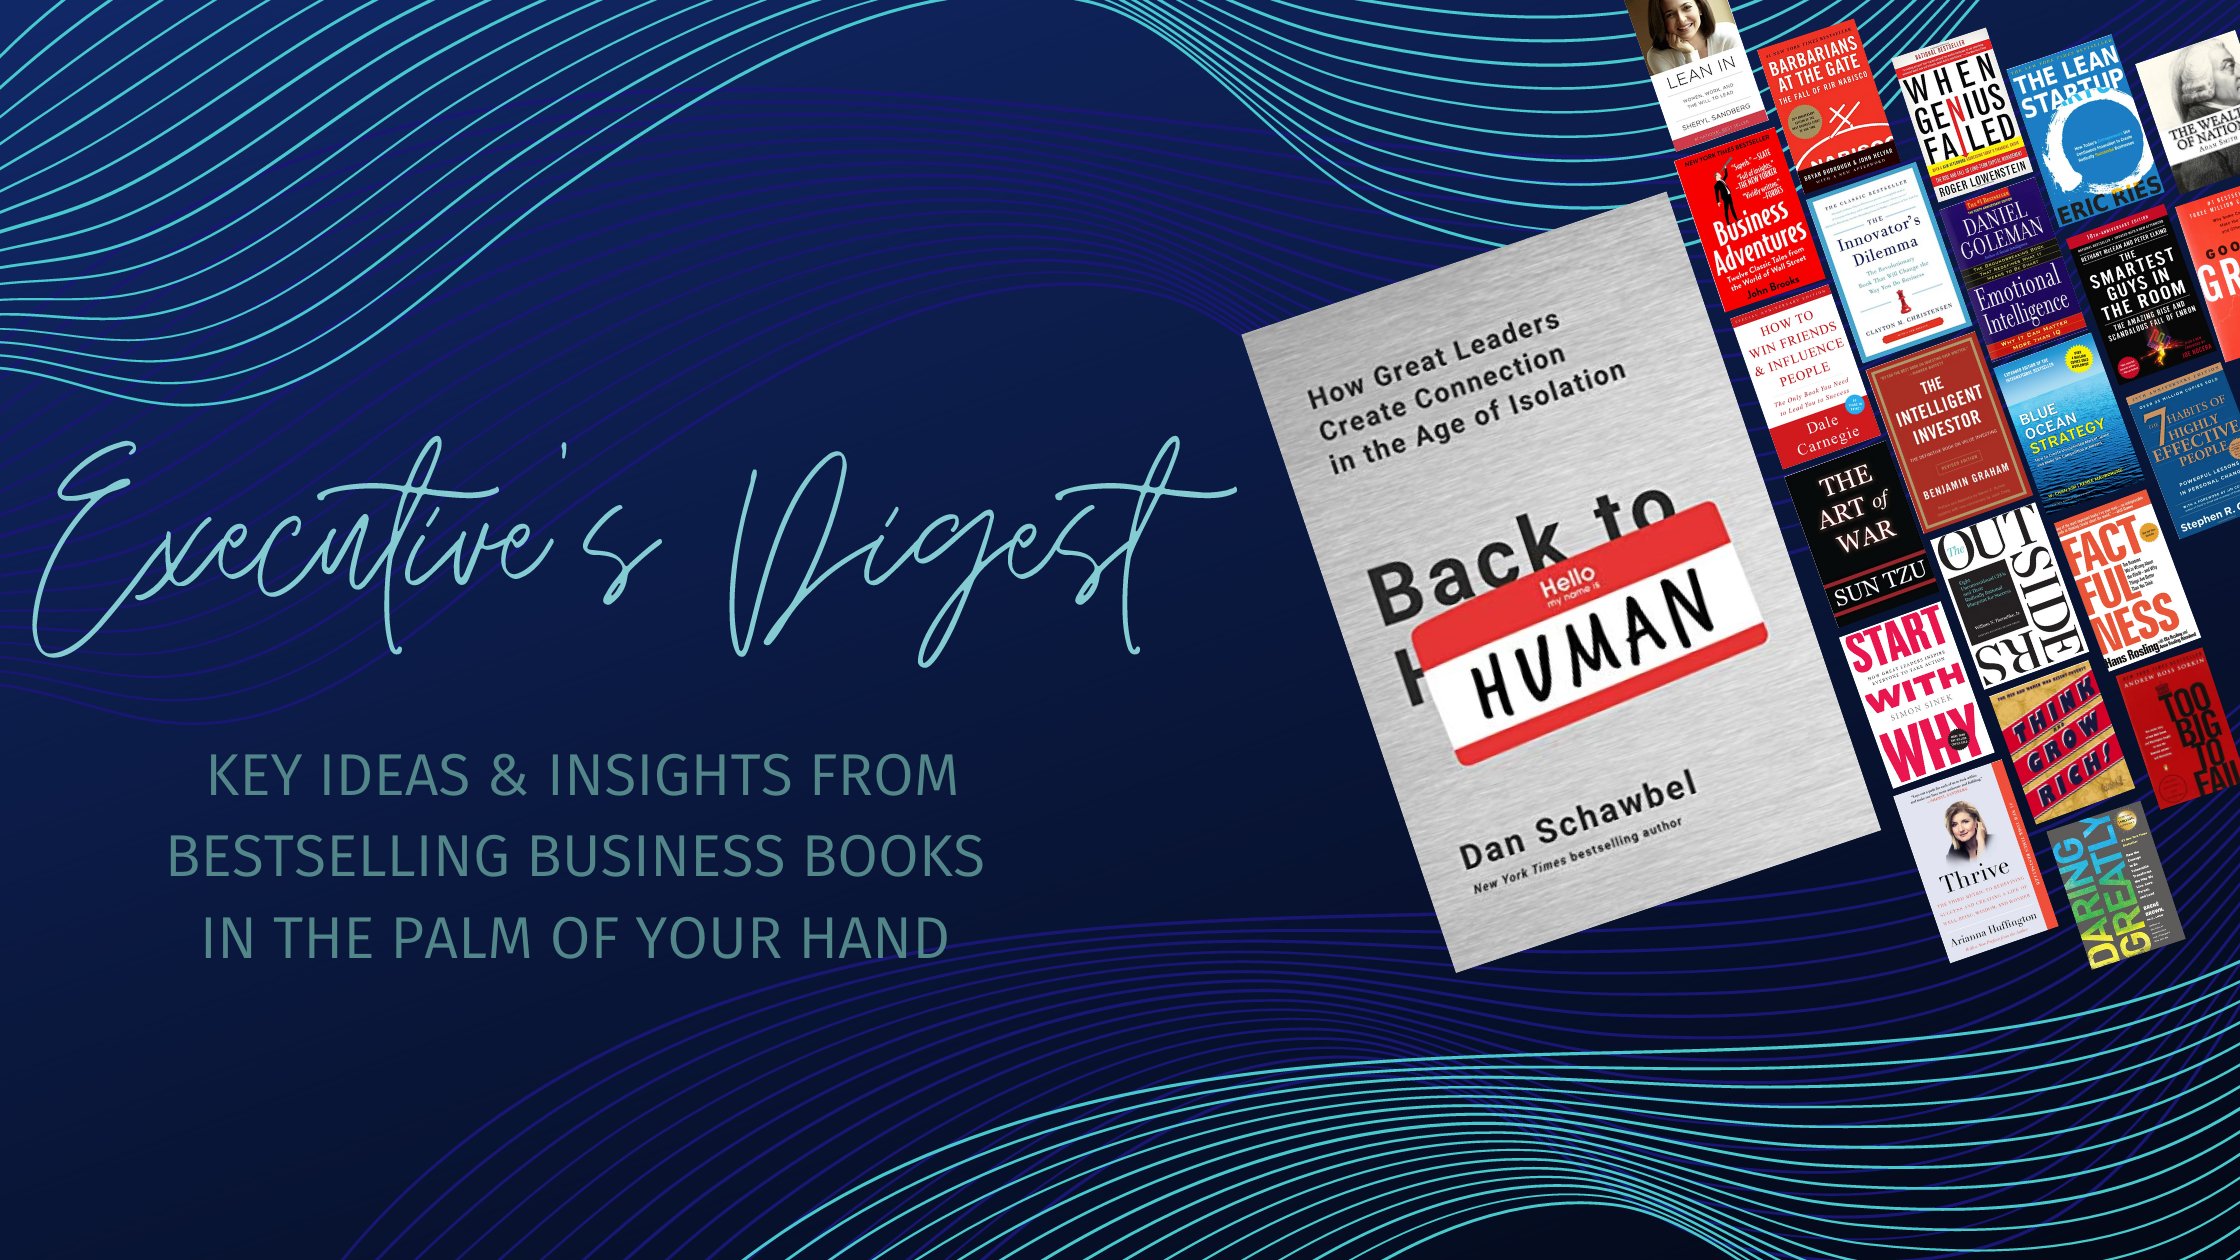 Executive's Digest: Back to Human